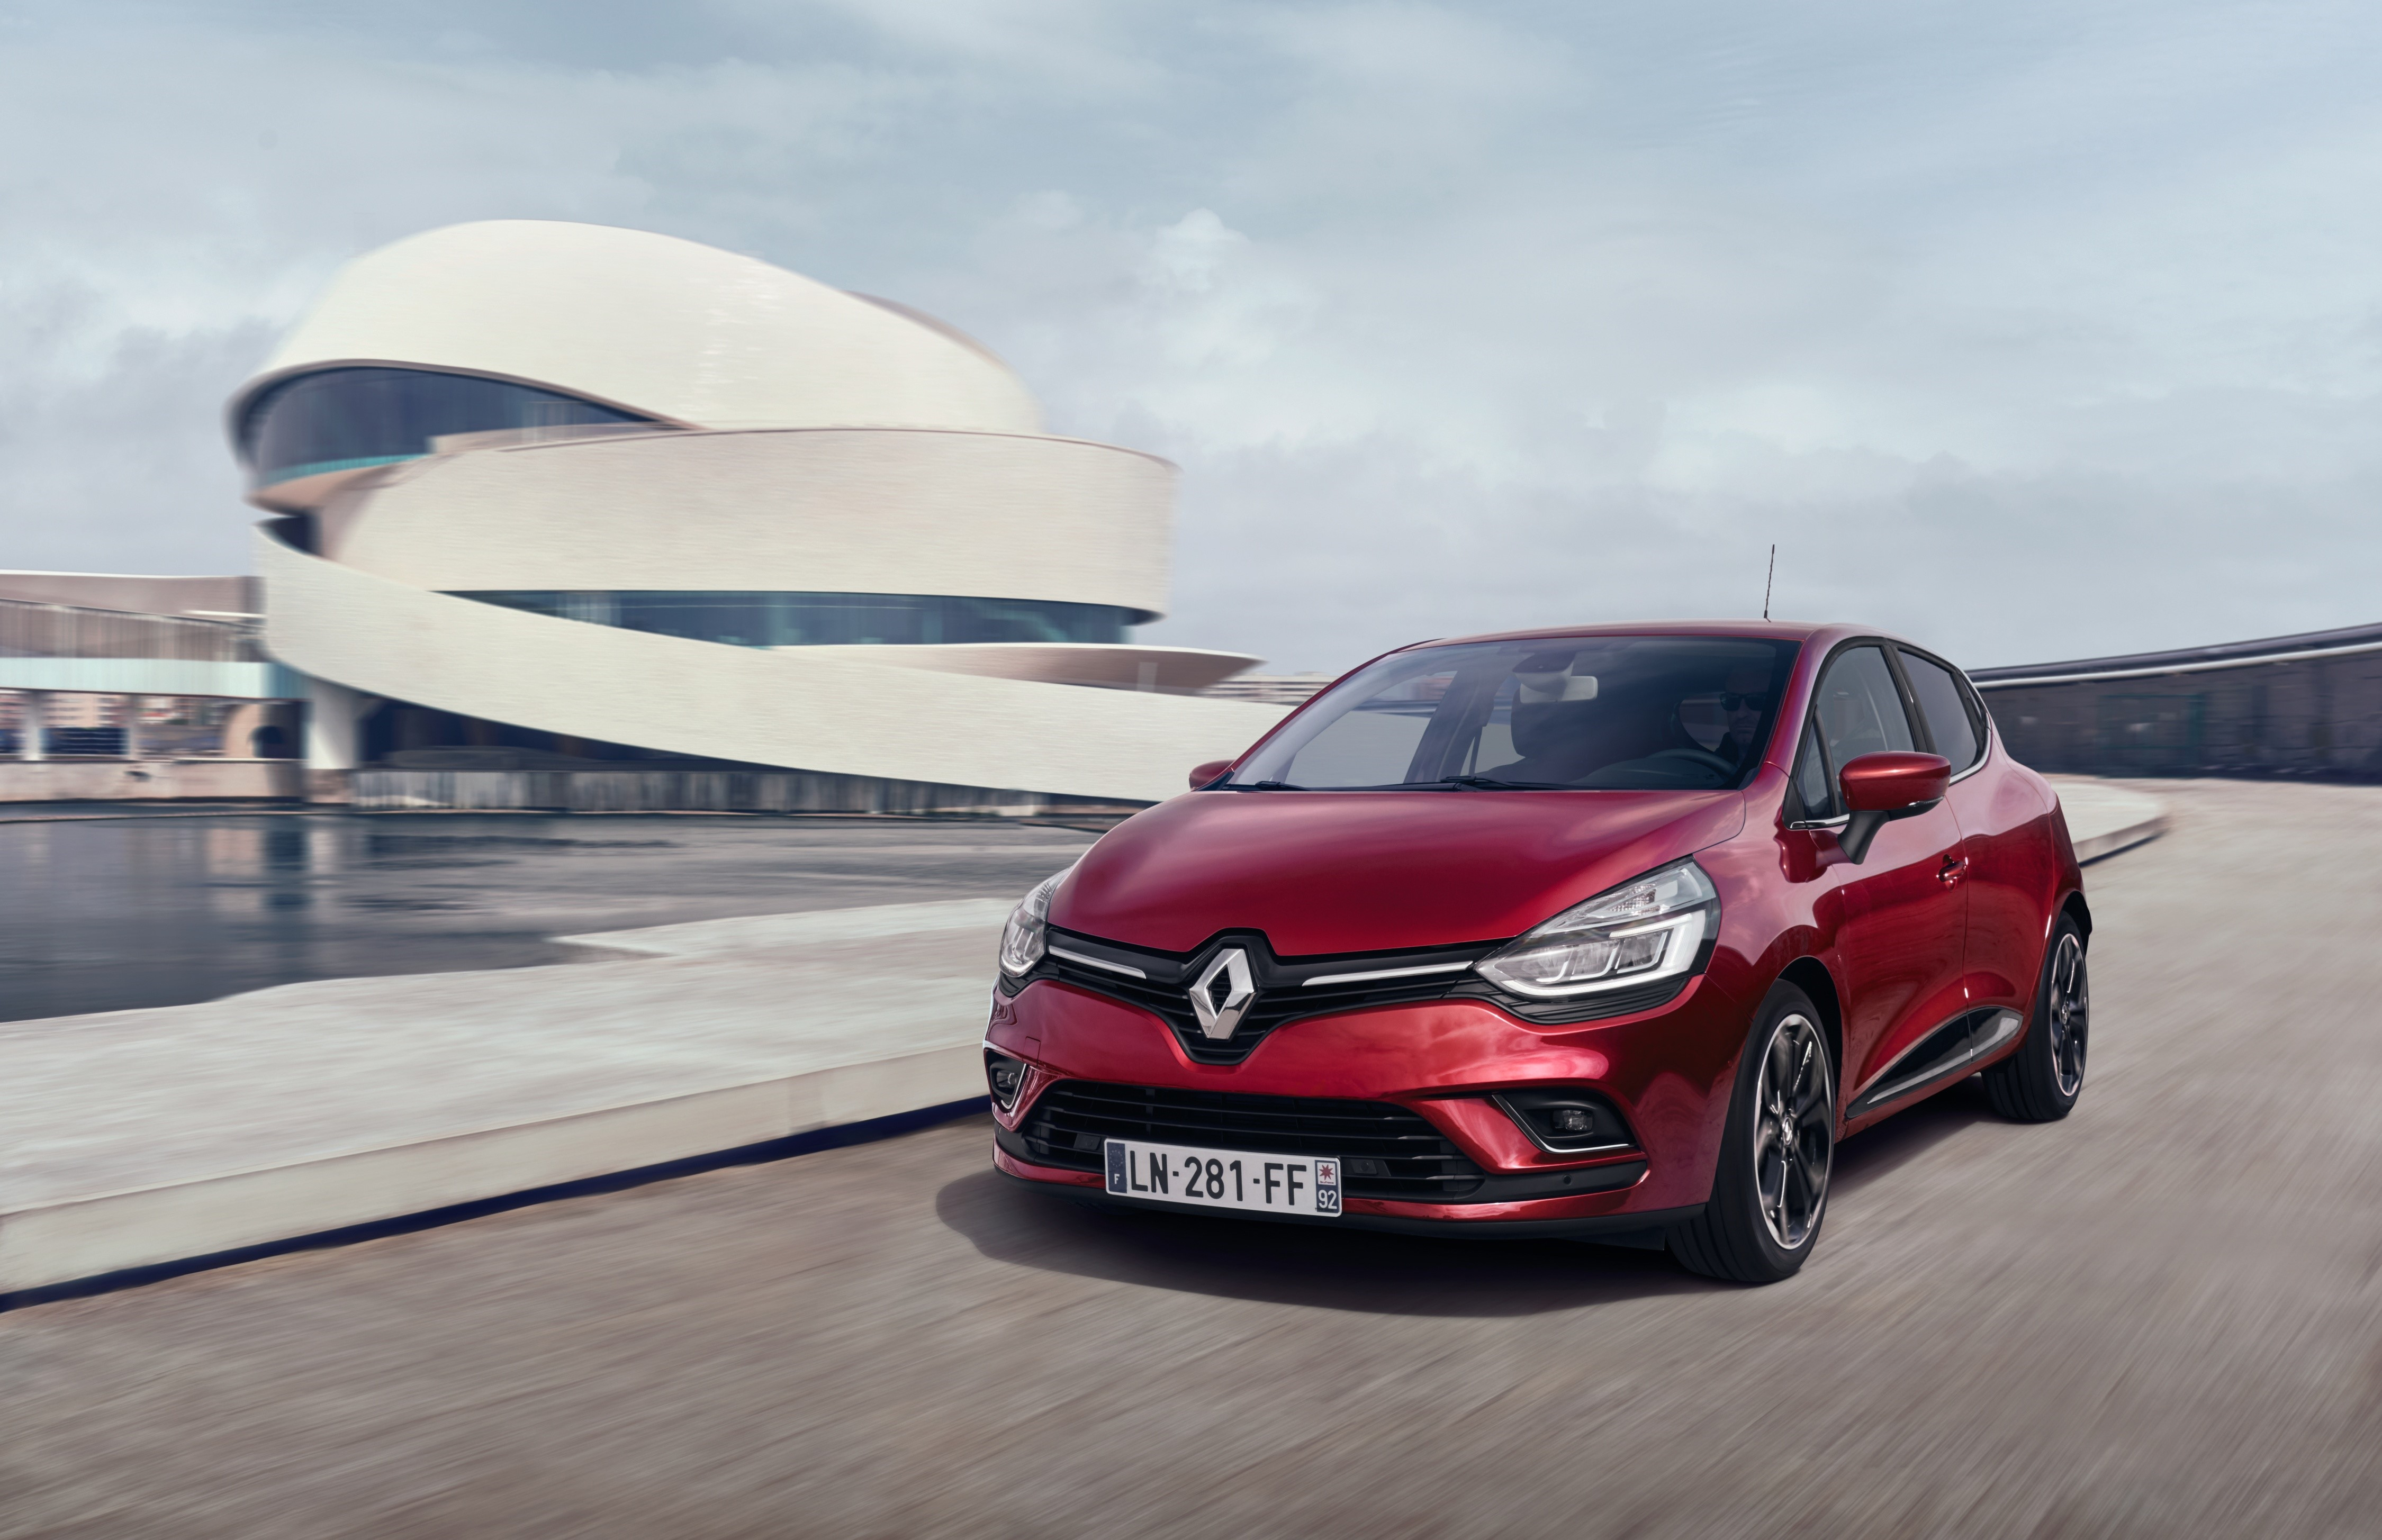 Renault Clio IV Restyling 2016 - now Station wagon 5 door #7